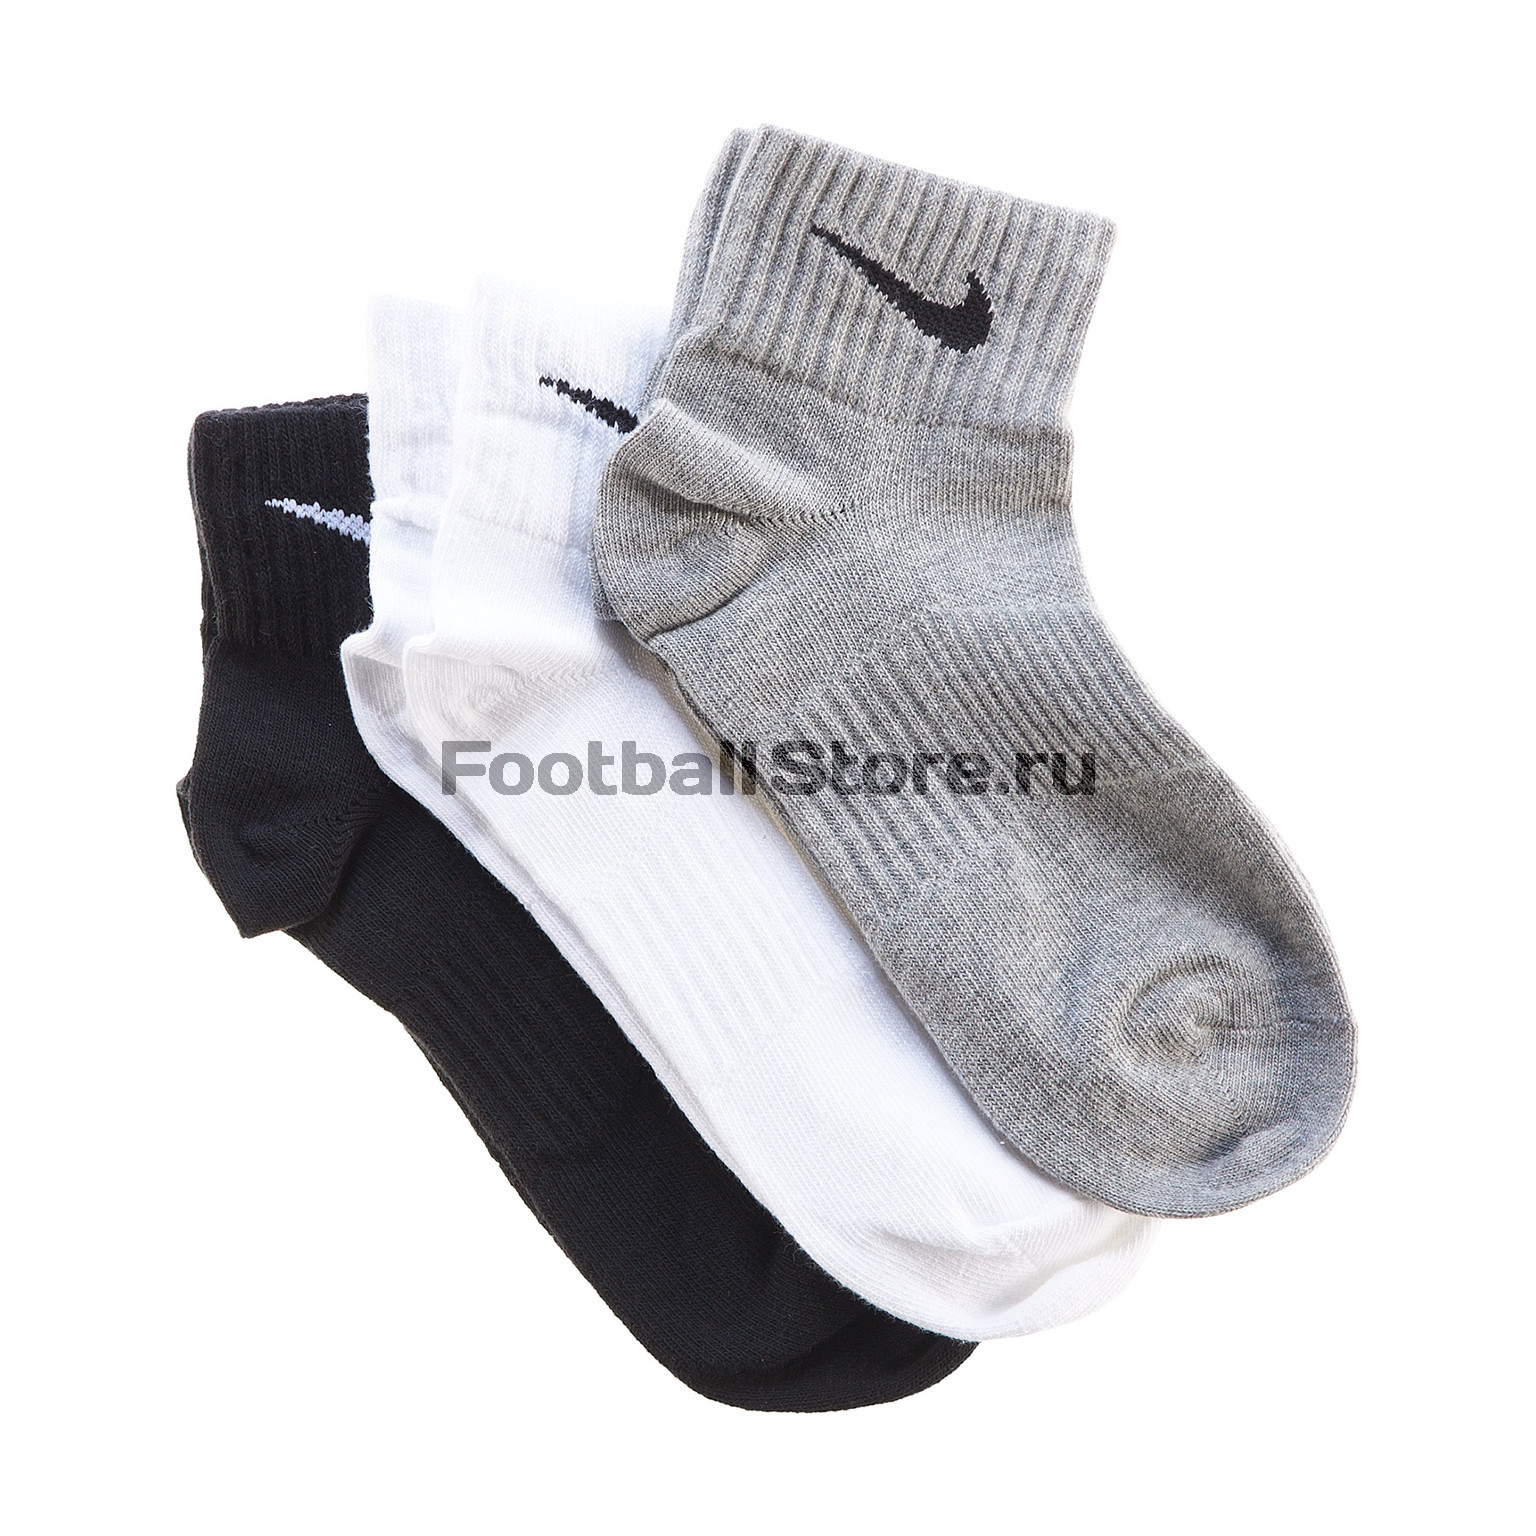 Комплект носков Nike 3ppk lightweight quarter комплект носков nike 3ppk value cotton crew smlx sx4508 101